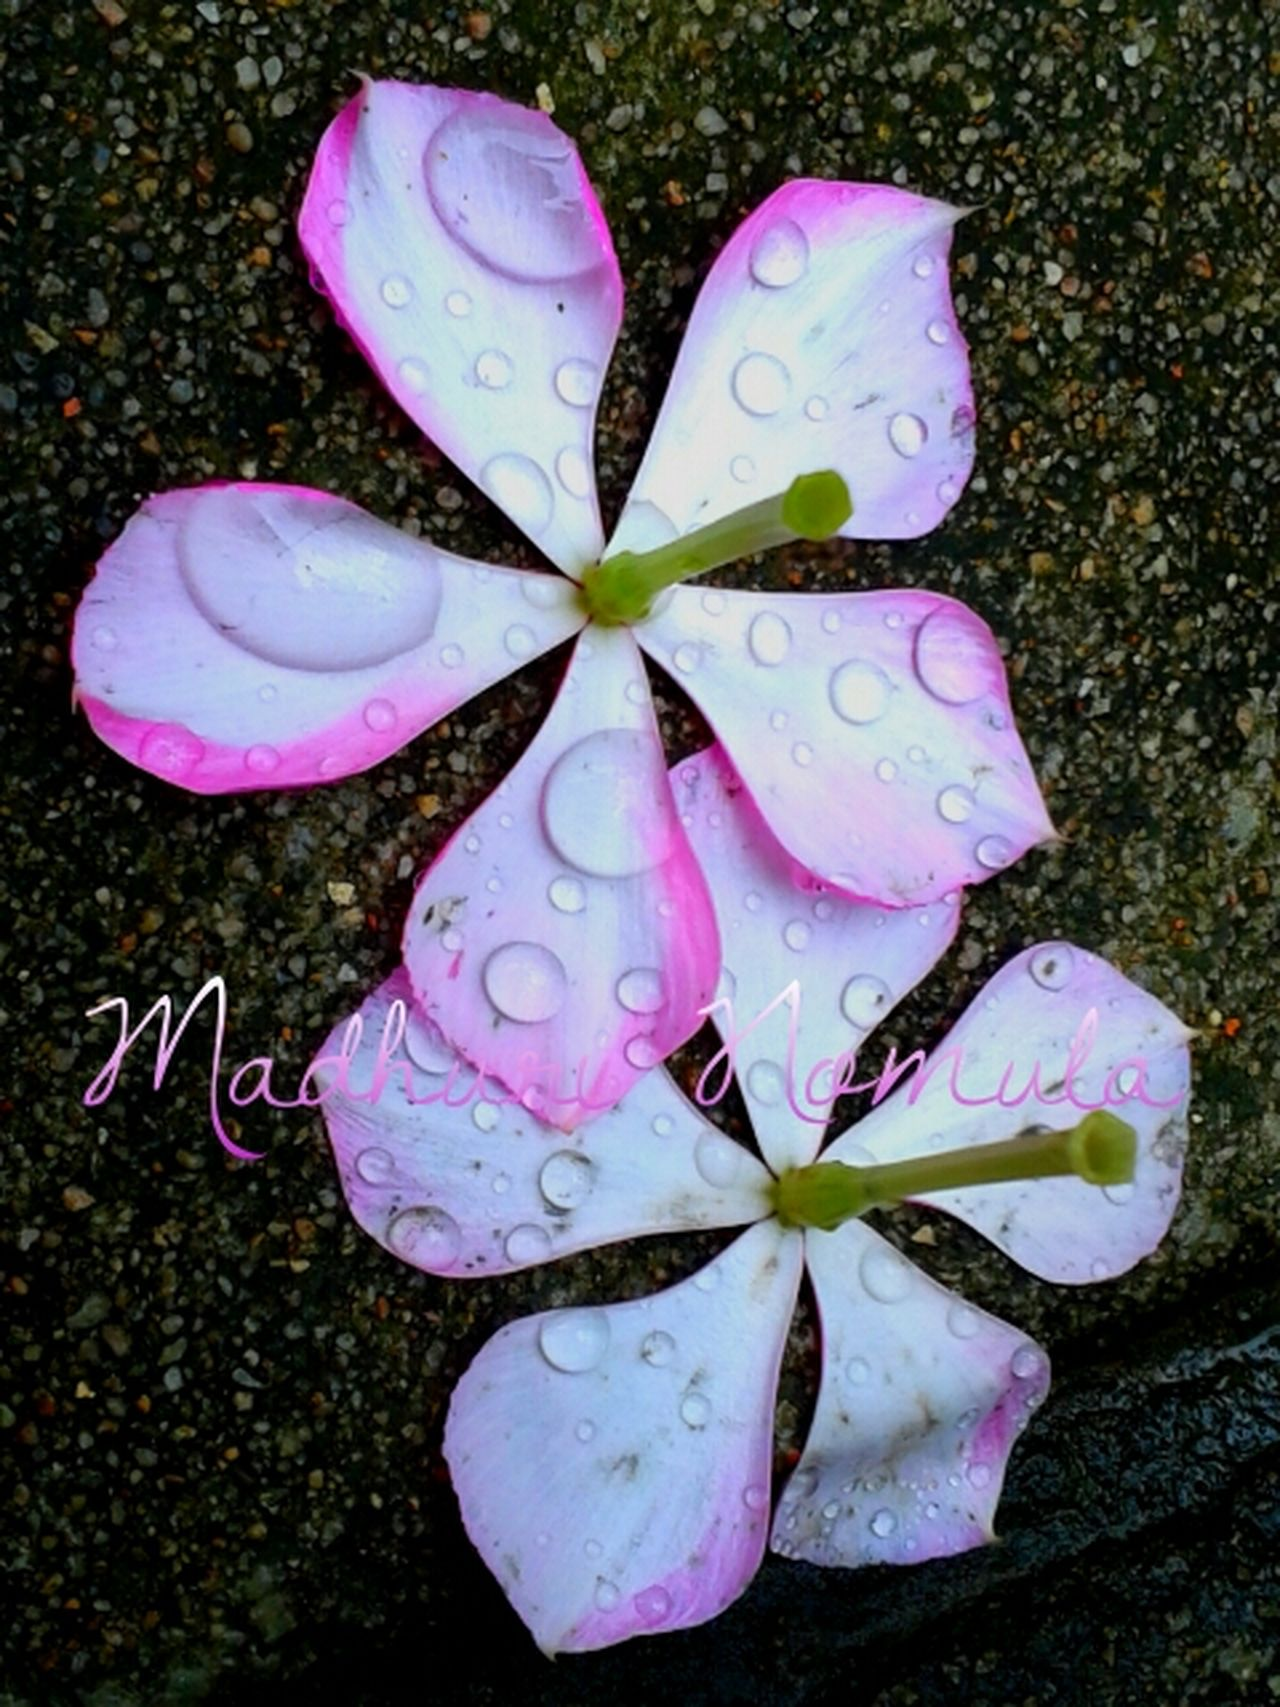 Fallen flowers.. 🌼🌸 Flowers Flowers In My Garden Flowers In Rain Rain Rain Photography Rain Drops On Flowers Raindrops Rain Drops On Petals Rain Drops On Pink Flowers Mobile Photography Contrasting Colors Naturesbeauty Showcase June Two Is Better Than One